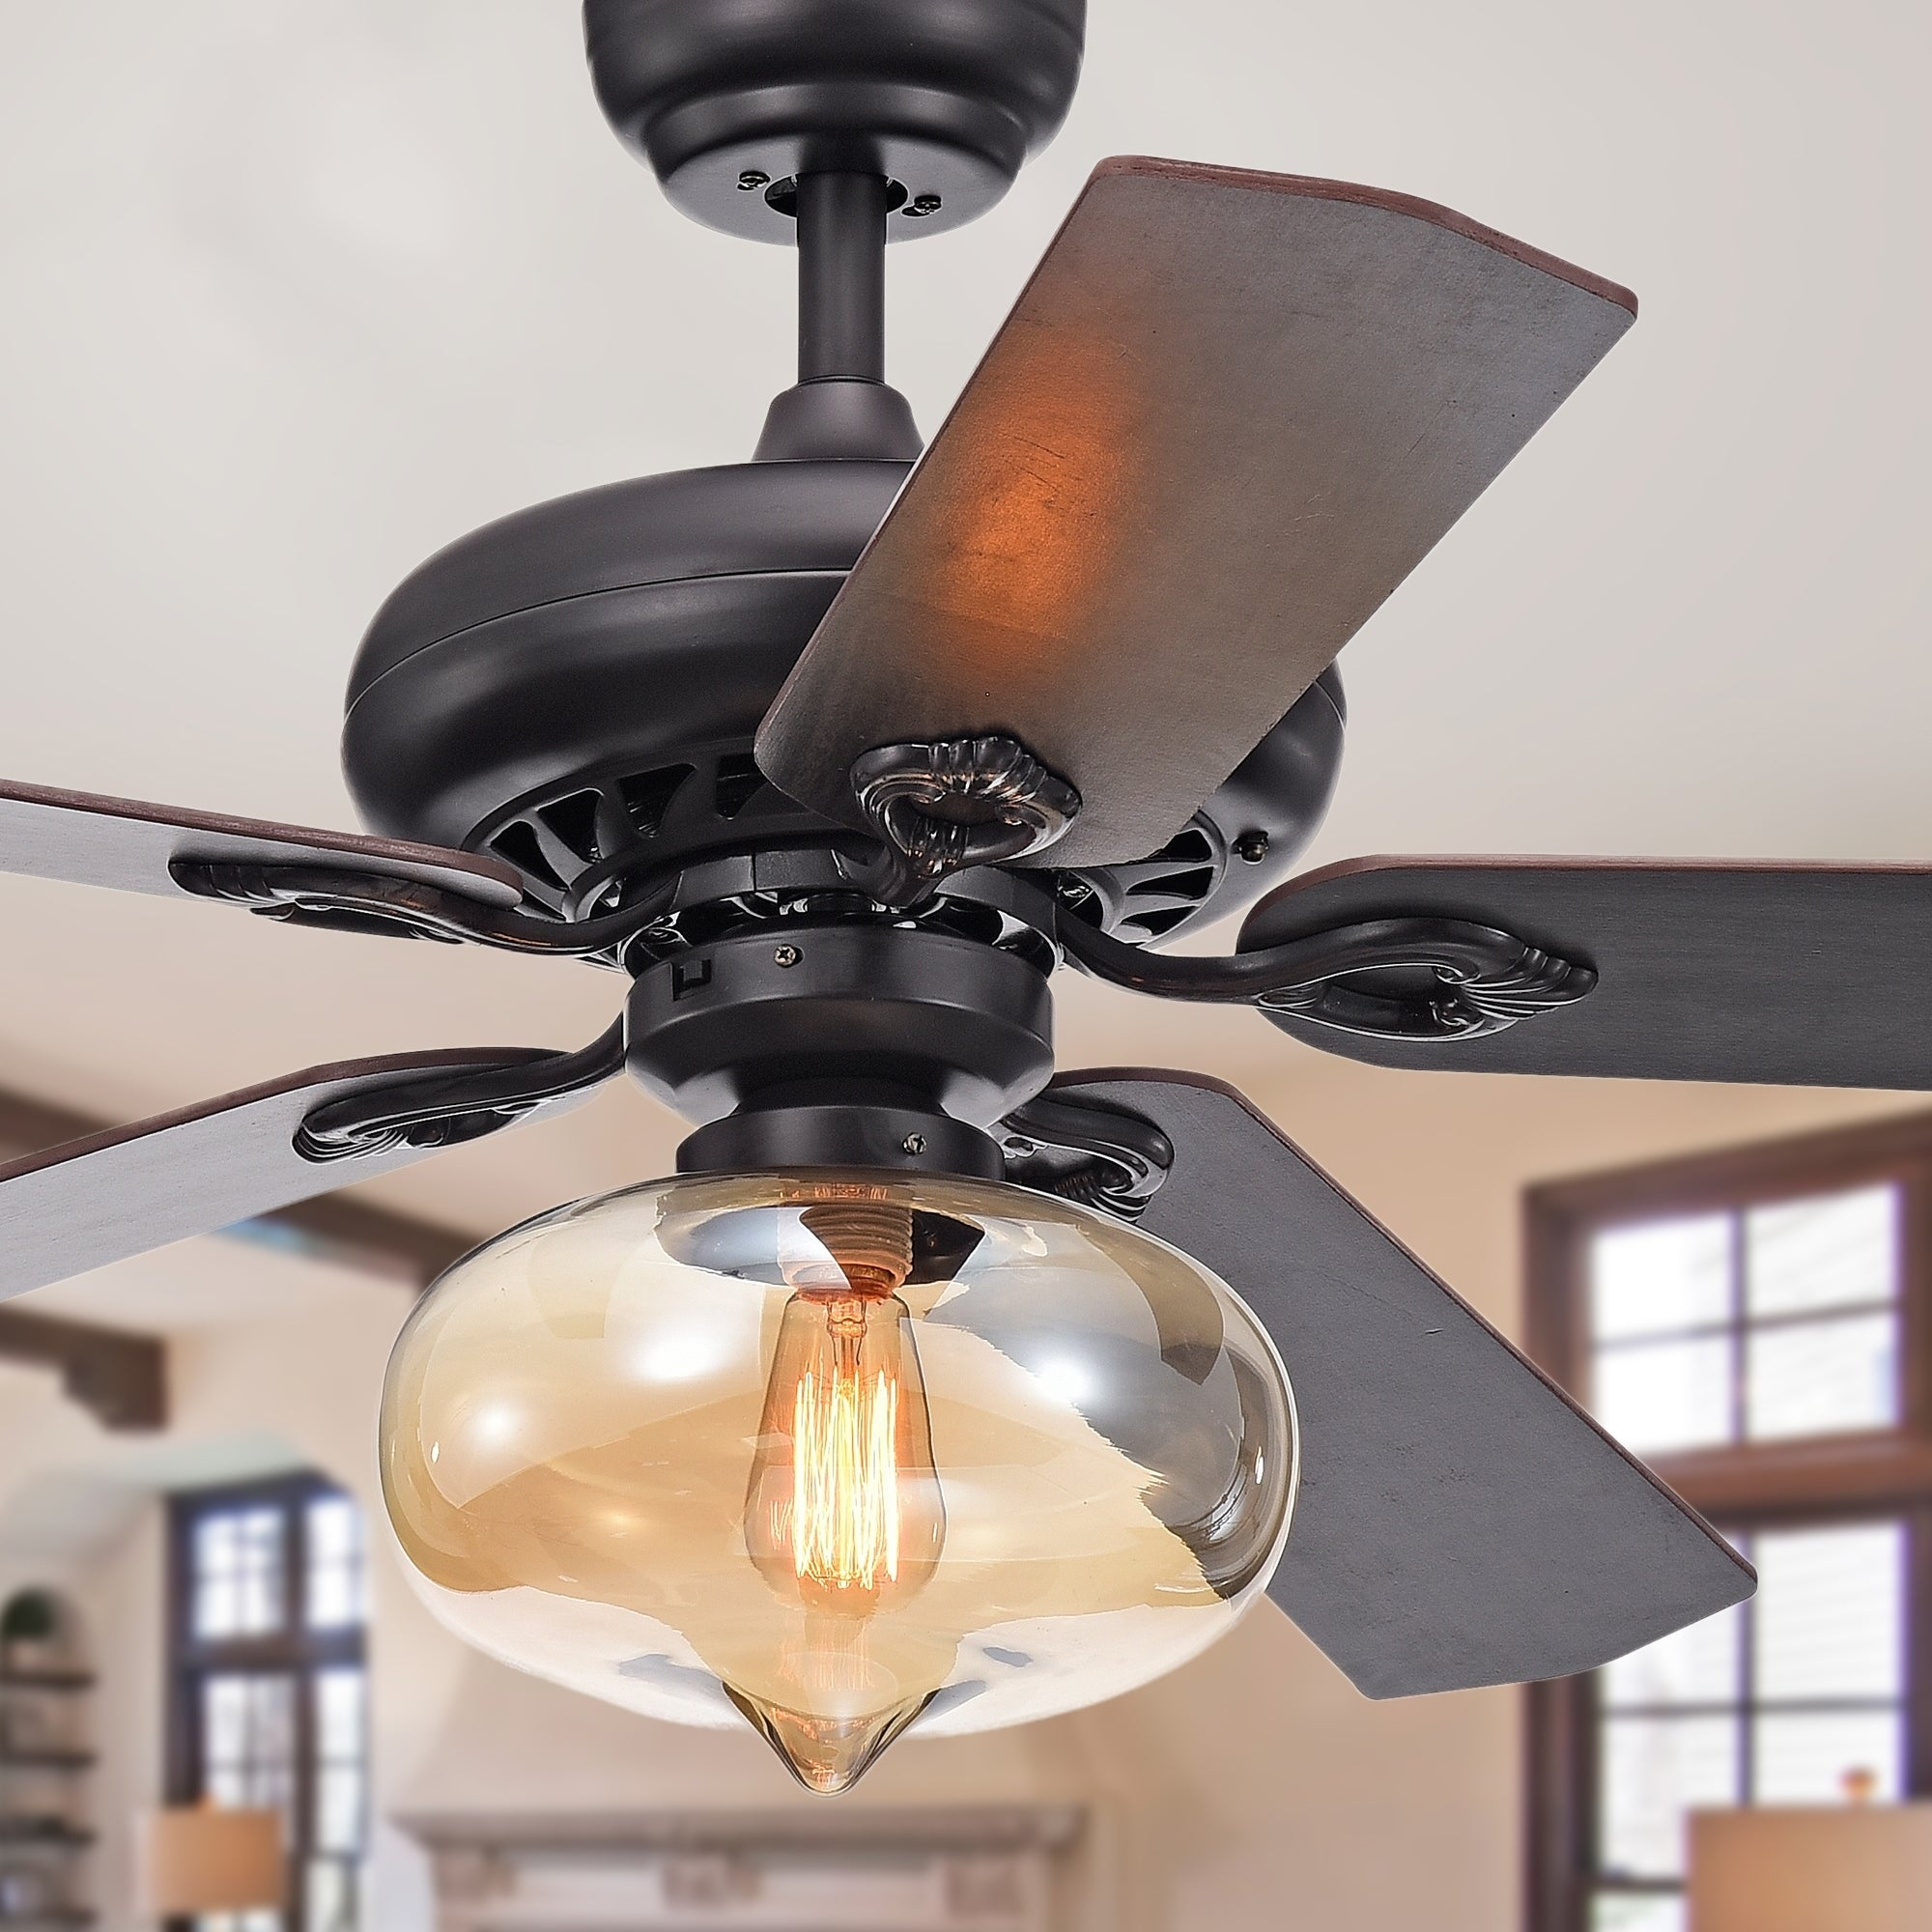 Figuera 52 Inch 5 Blade Antique Black Lighted Ceiling Fans W Clear Amber Glass Shade Remote Controlled 2 Color Option Blades Overstock 22731304